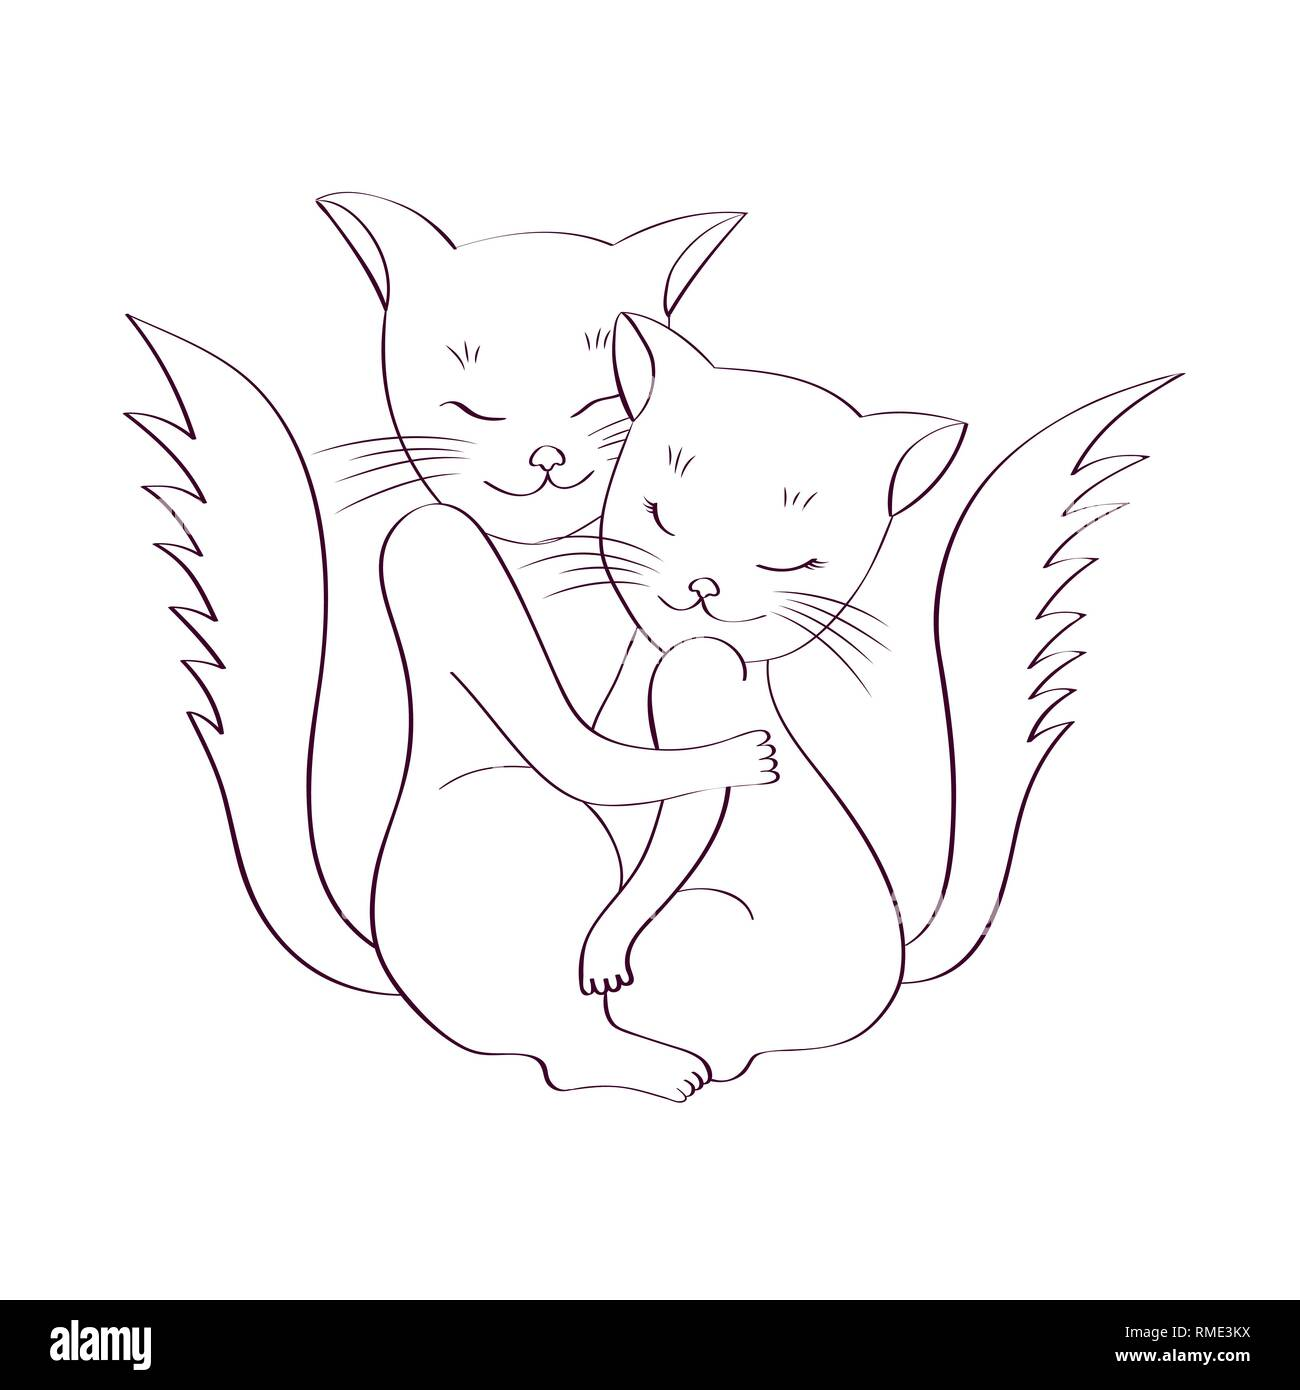 Cats are hugging sketch on white background